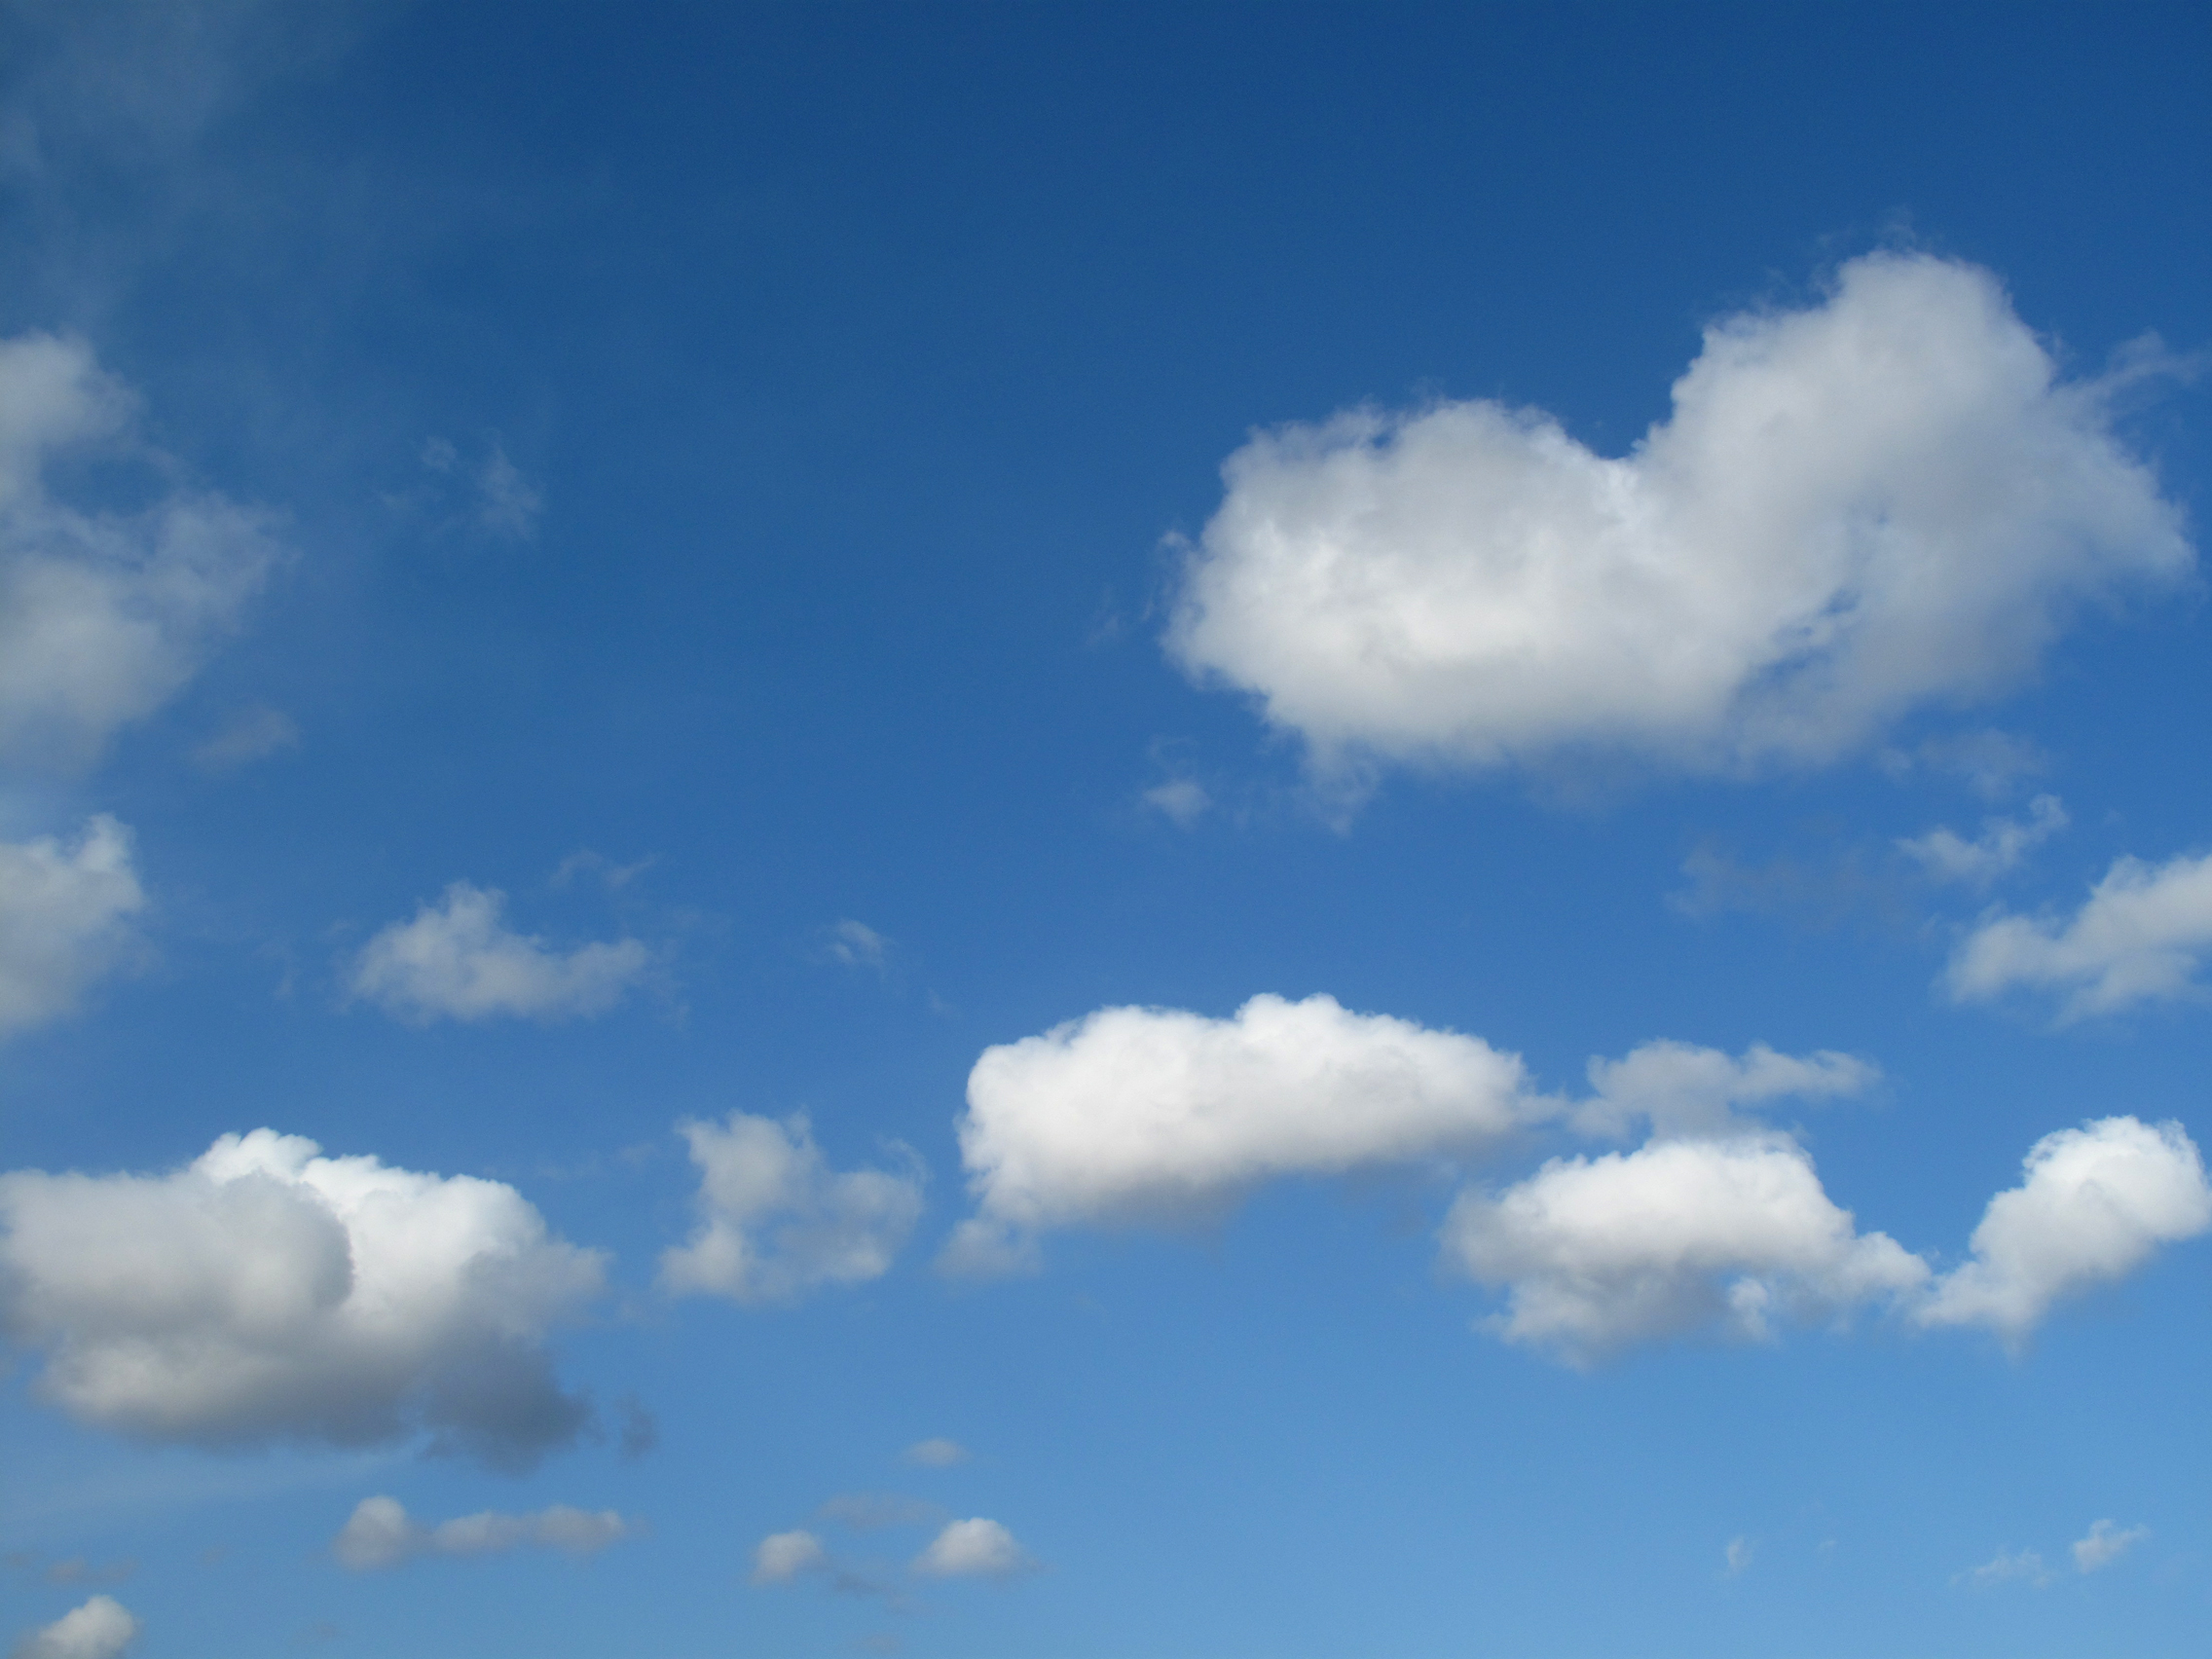 Cloudy Day, FREE Stock Photo, Image, Picture: Cloudy Blue ...